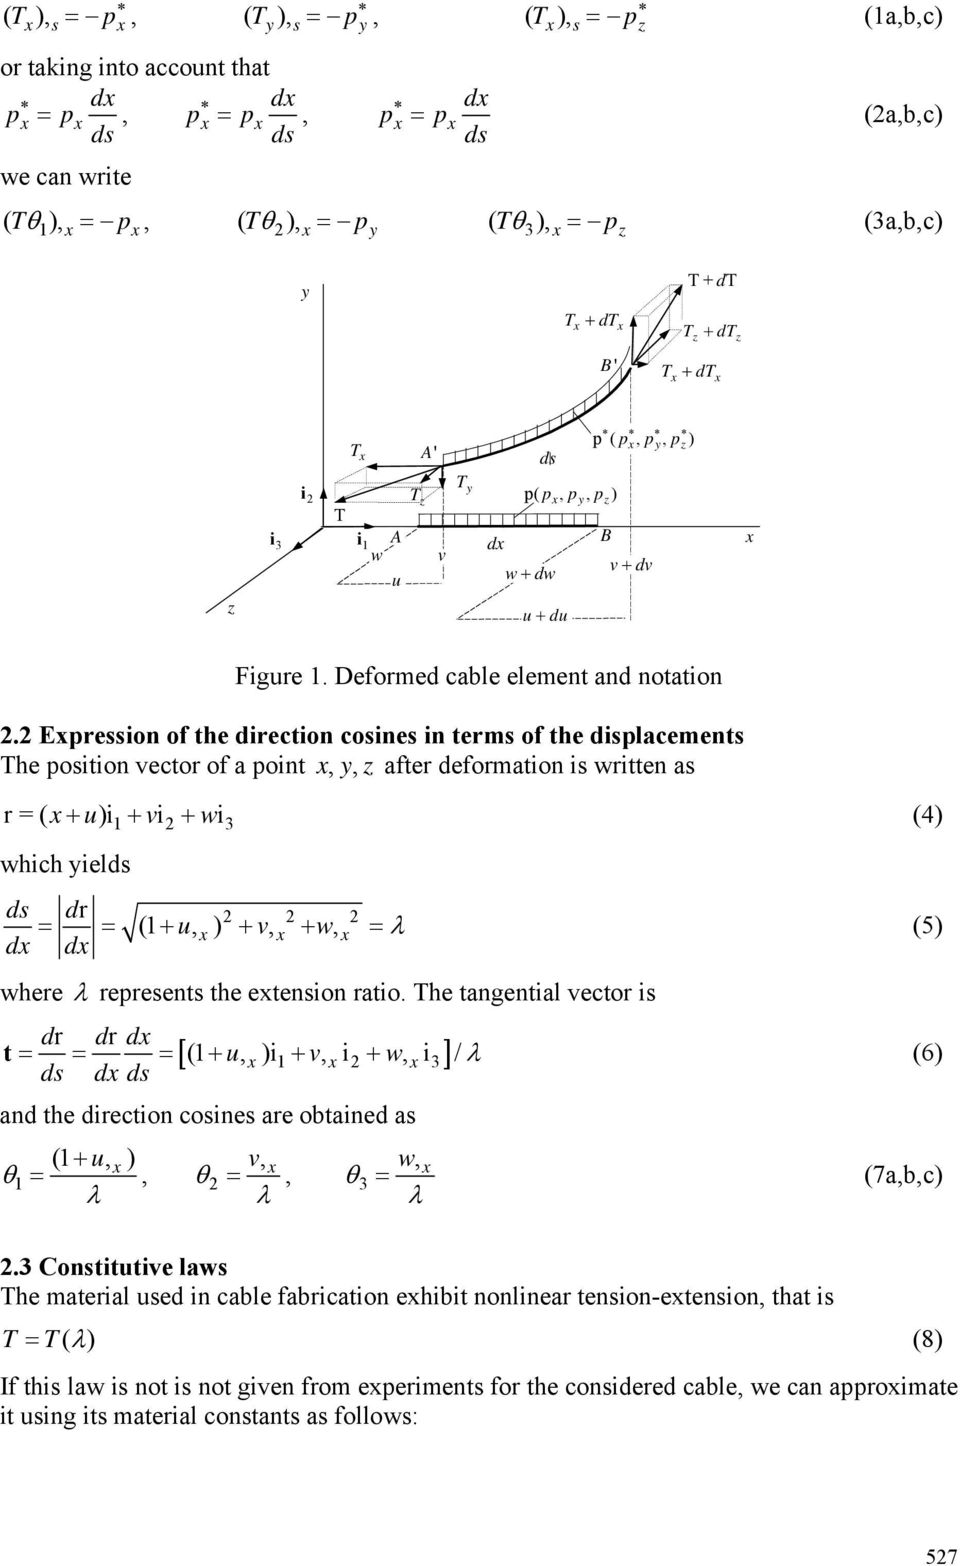 Eression of the direction cosines in terms of the dislacements he osition vector of a oint,, after deformation is written as r=( u)i vi wi (4) 3 which ields ds dr ( u, ) v, w, (5) d d where reresents